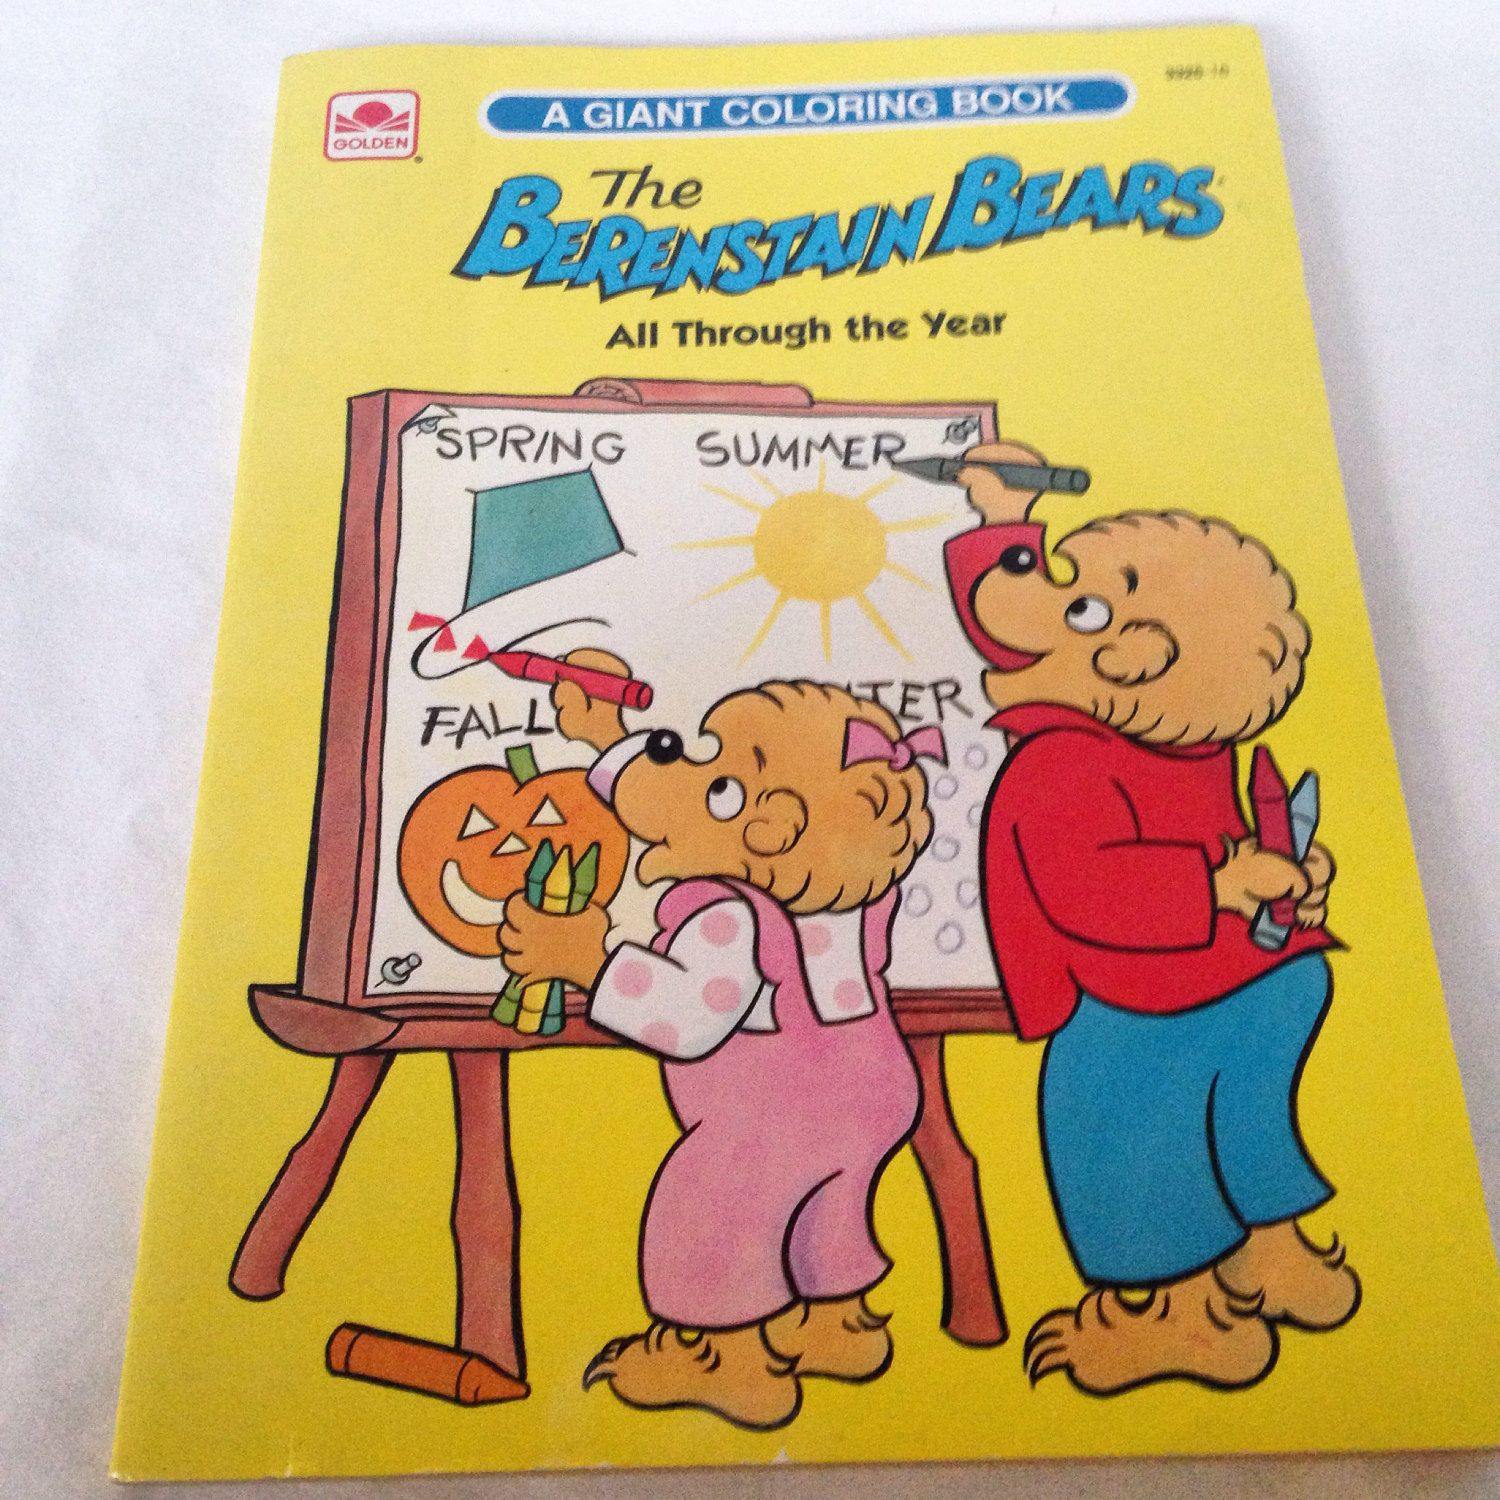 Vintage Berenstain Bears Coloring Book Golden All Through